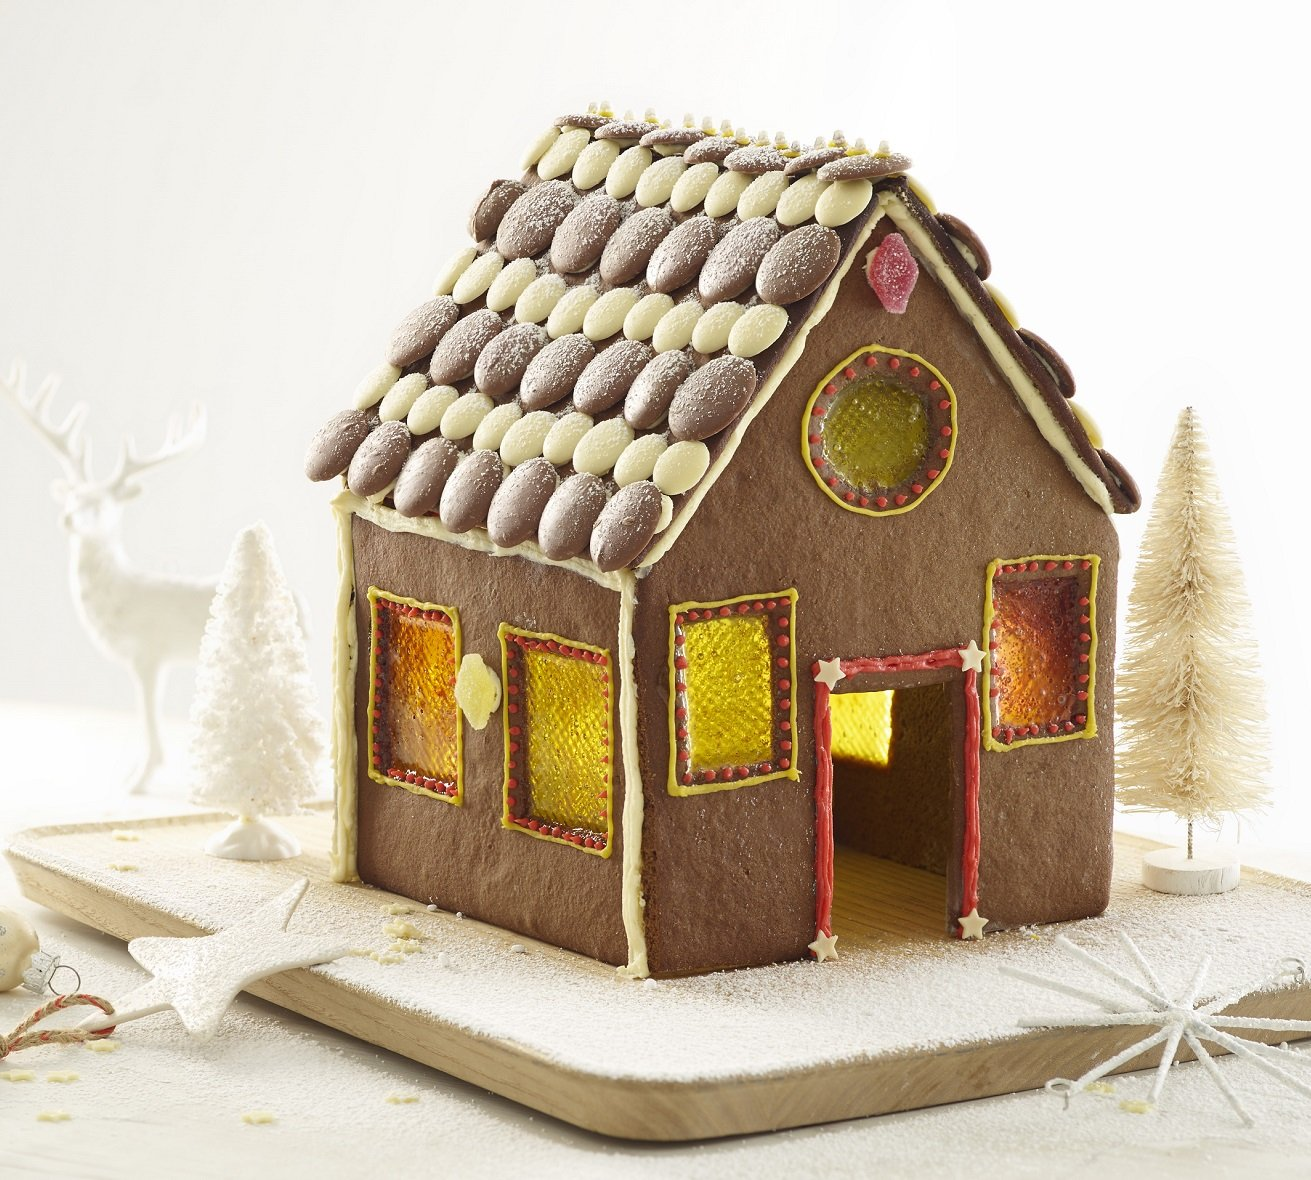 Annabel S Gingerbread House Annabel Karmel